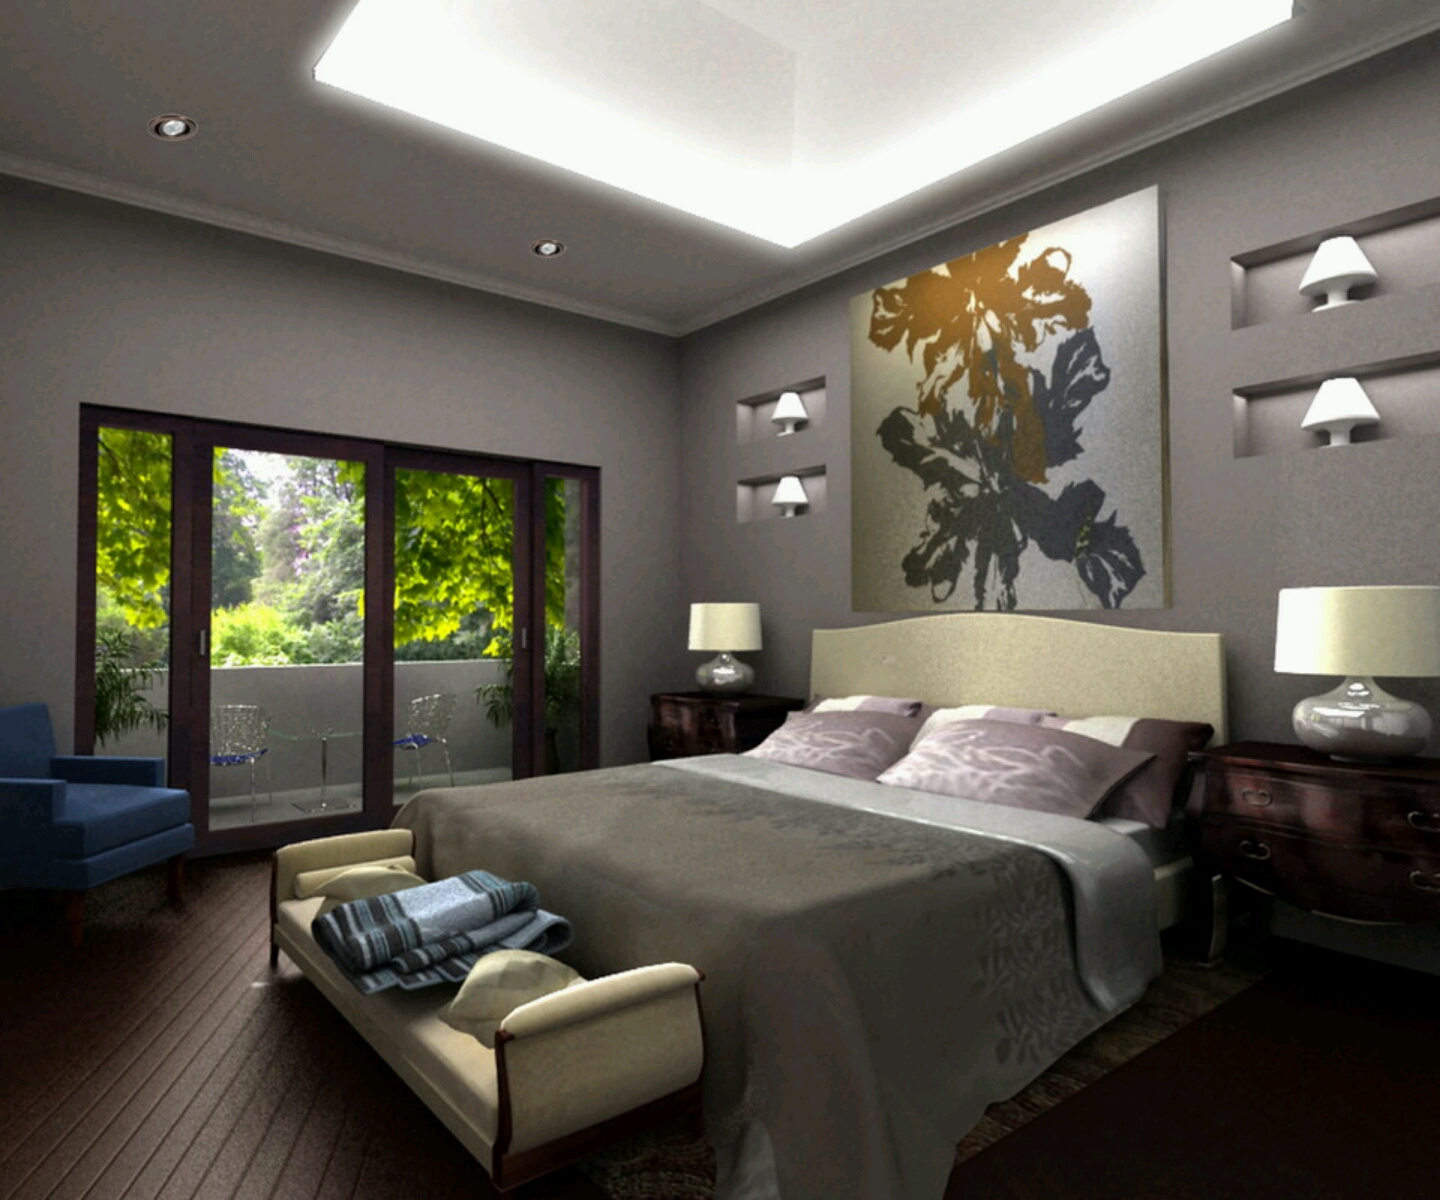 Modern bed designs beautiful bedrooms designs ideas furniture gallery - Interior designing bedroom ...